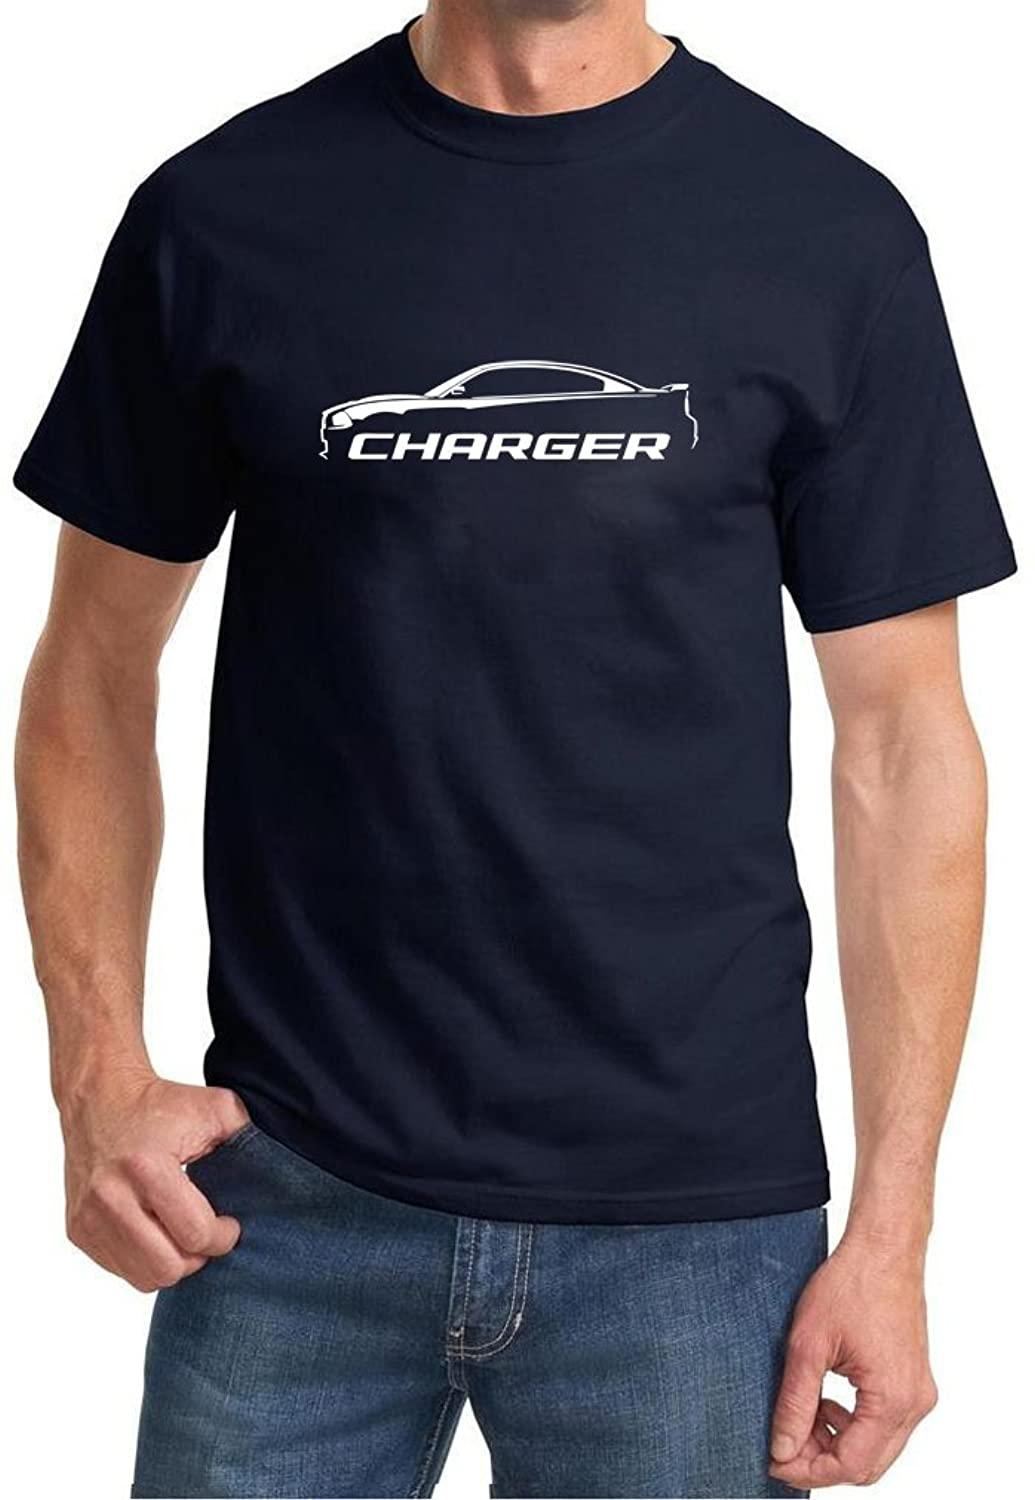 2010-14 Dodge Charger Classic Outline Design Tshirt large navy blue